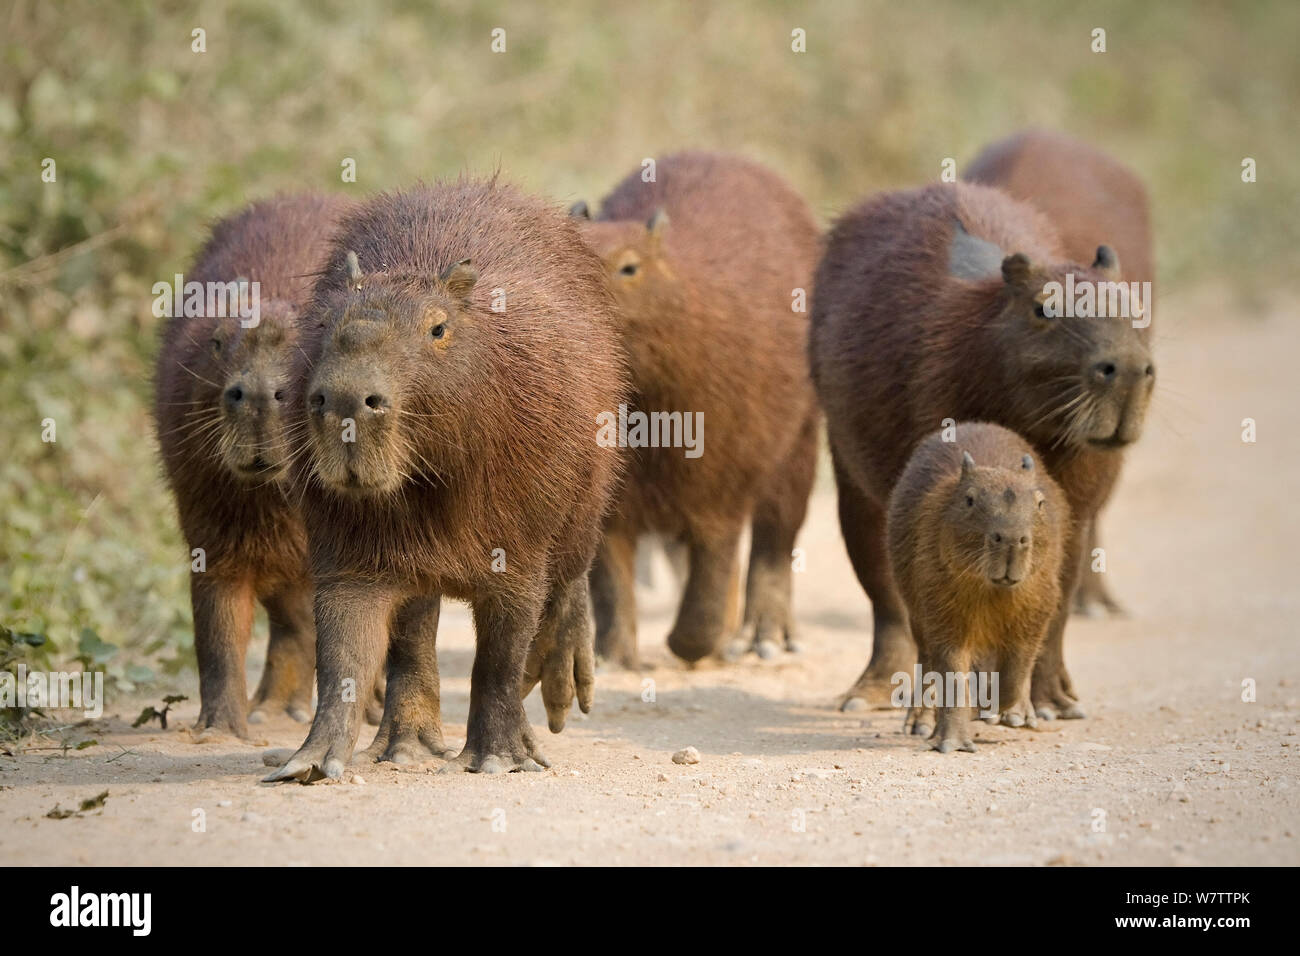 Capybara (Hydrochaeris hydrochaeris) group with young on the Transpantaneira road, Mato Grosso, Brazil Stock Photo